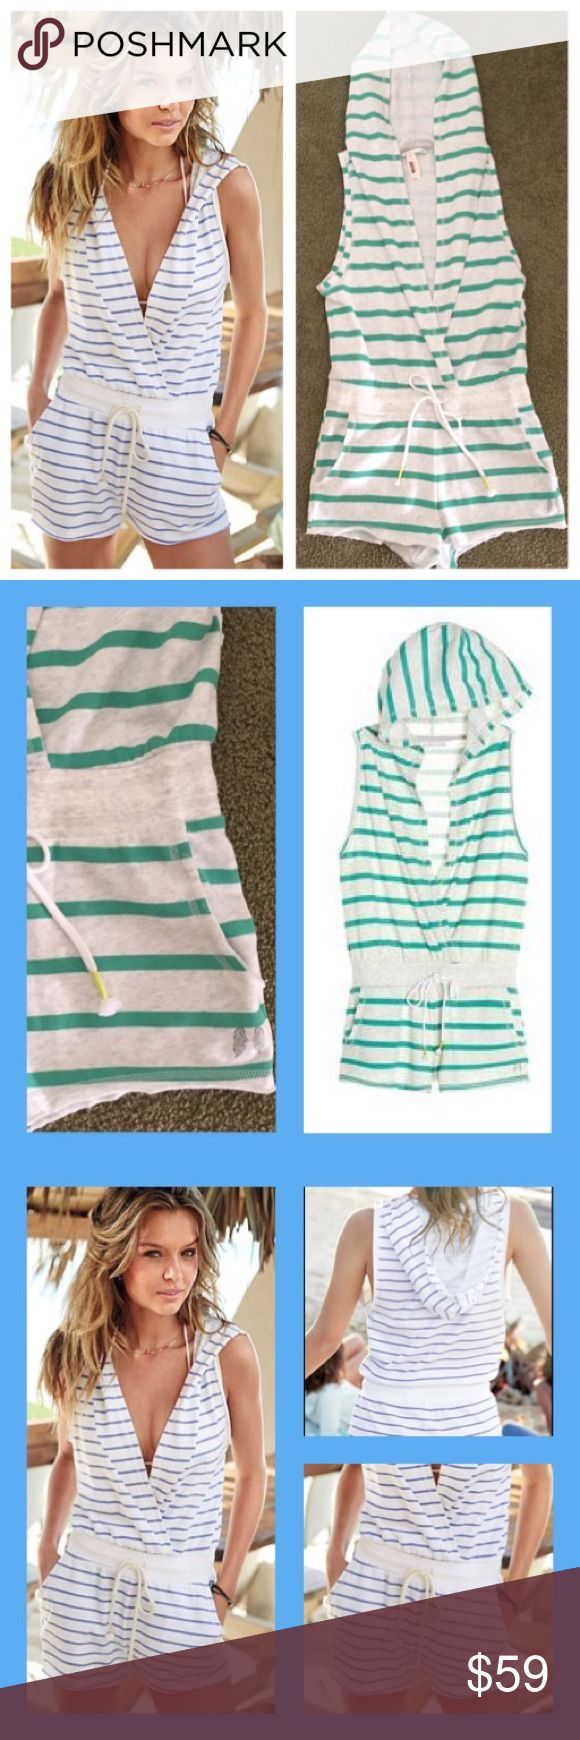 Victoria's Secret Striped Hooded Romper Victoria's Secret Striped Hooded Romper in Green & White with a Plunging Crossover Front, Hood, Sleeveless, Banded Ribbed Waist with Drawstring and Pockets in the Shorts with a Curled Hem in a Cotton Blend with a Fleecy inside - Angel Wings at Shorts Hem. THIS LISTING IS FOR THE GREEN & WHITE Romper Victoria's Secret Swim Coverups